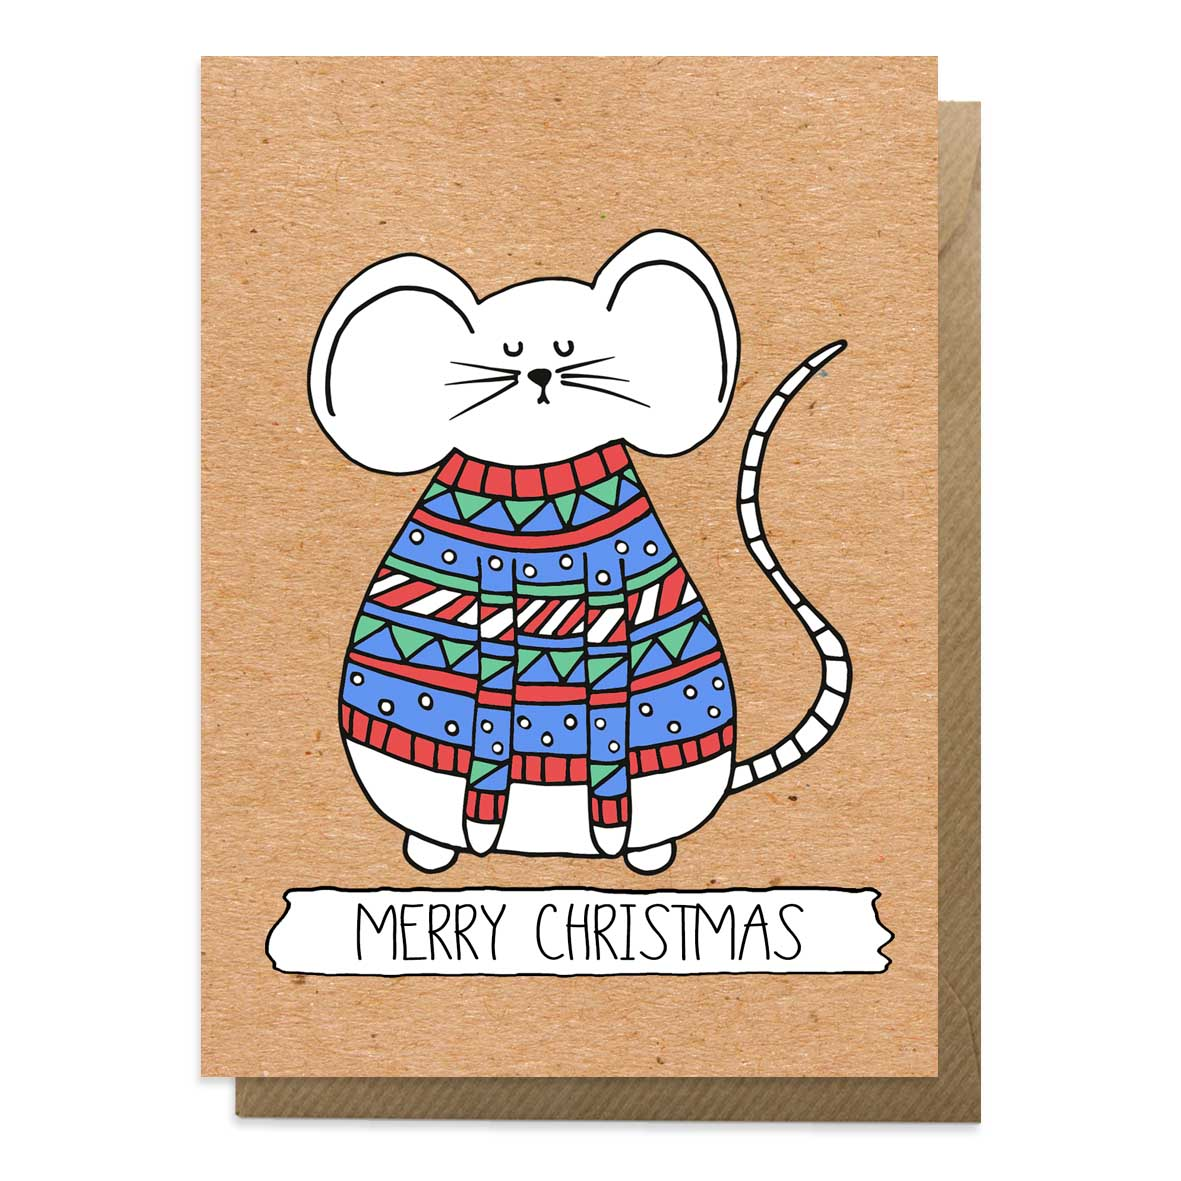 Christmas mouse card with an image of a mouse wearing a Christmas jumper